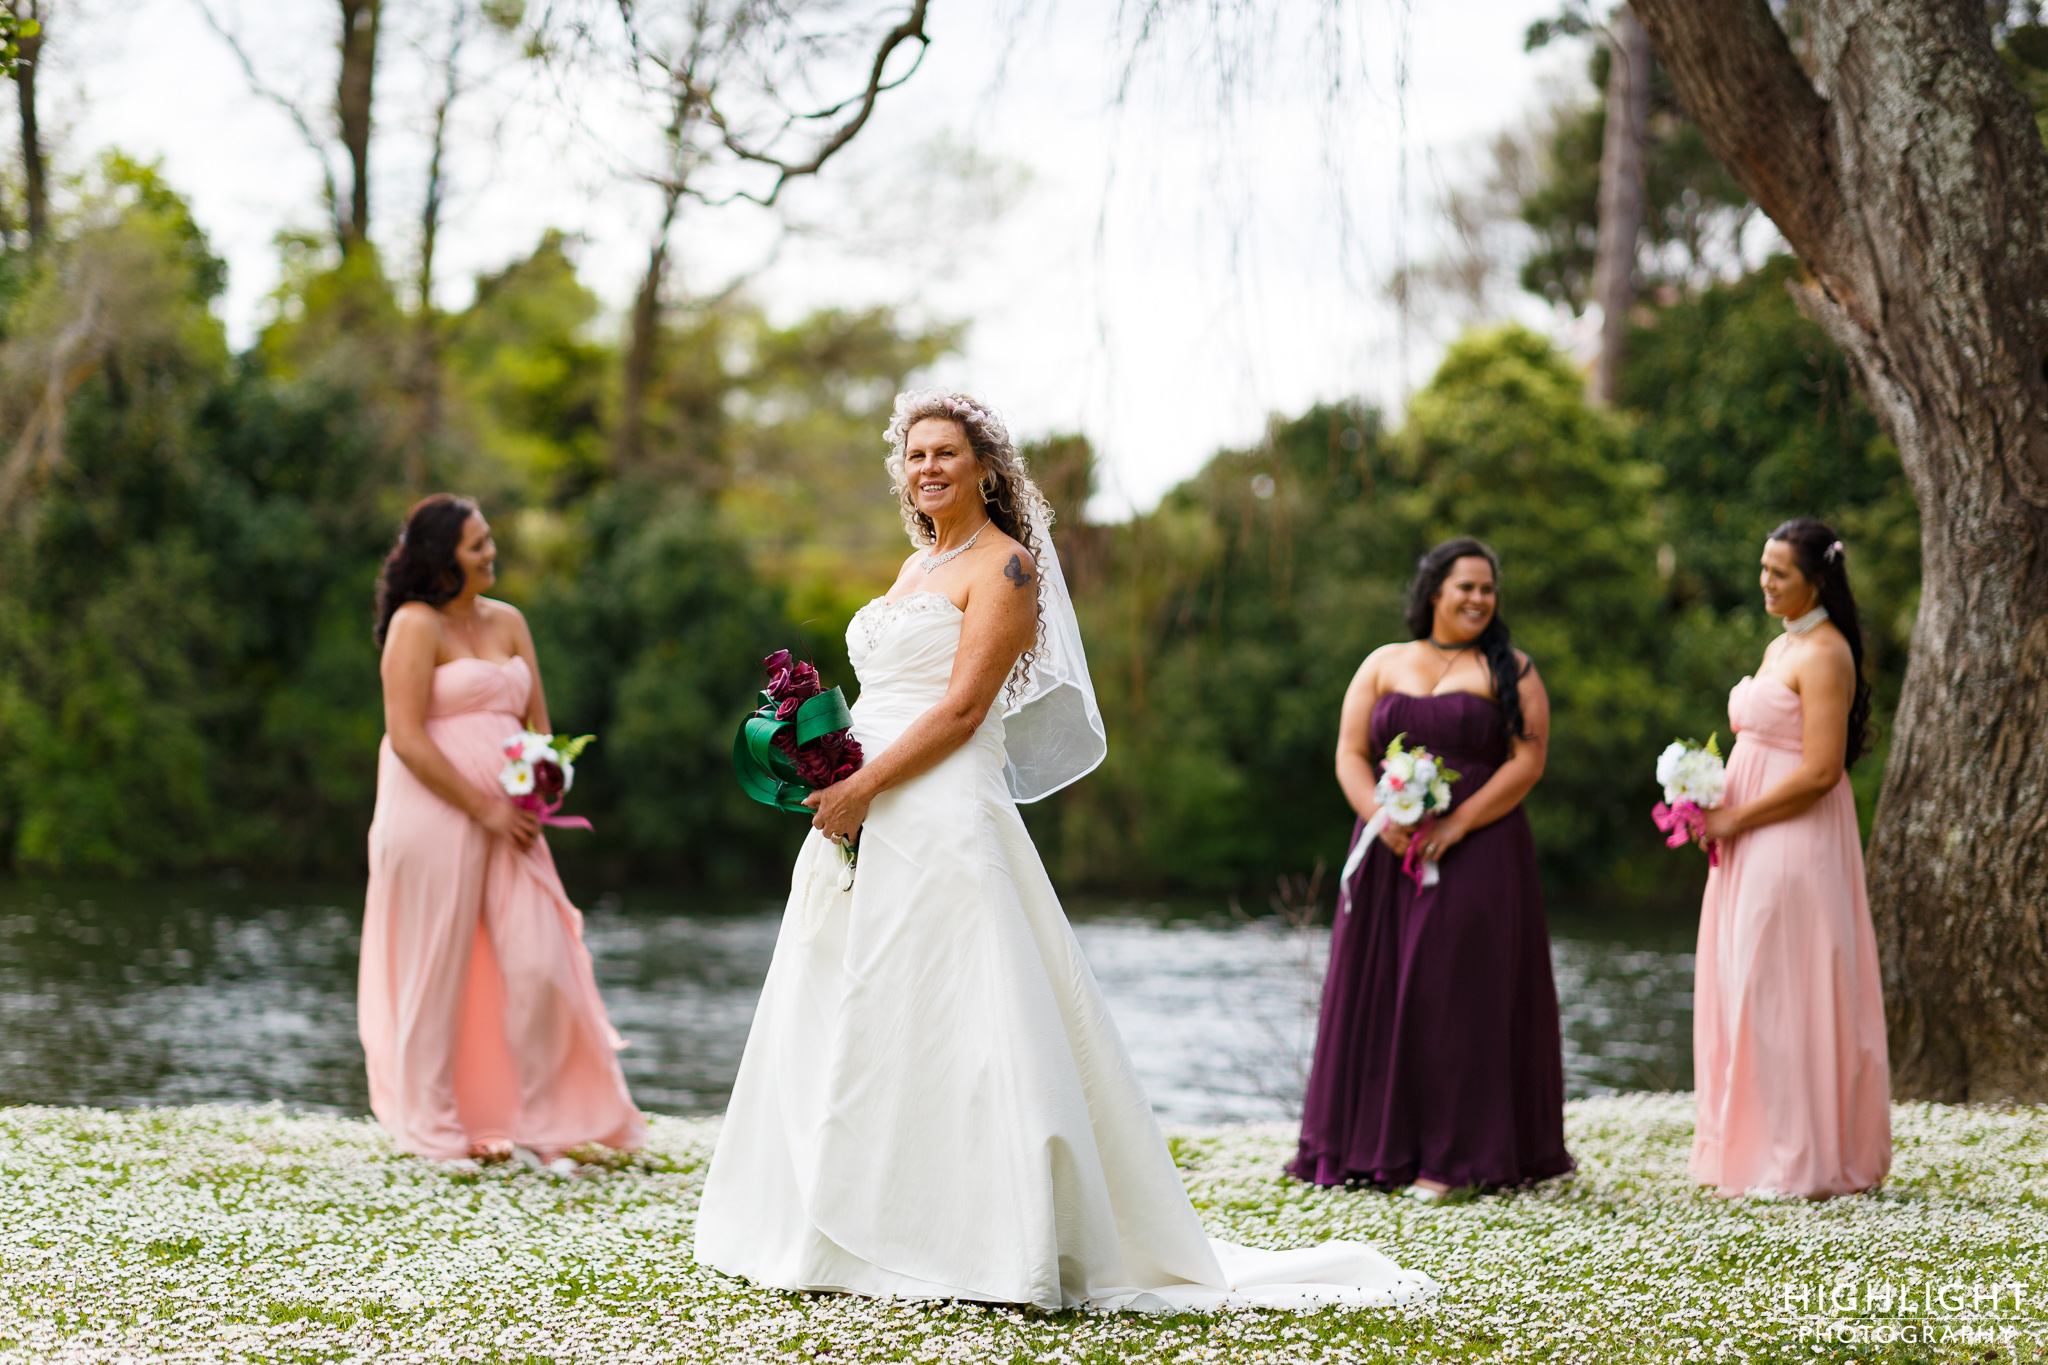 highlight_wedding_photography_palmerston_north_manawatu_chalet_wedding-57.jpg